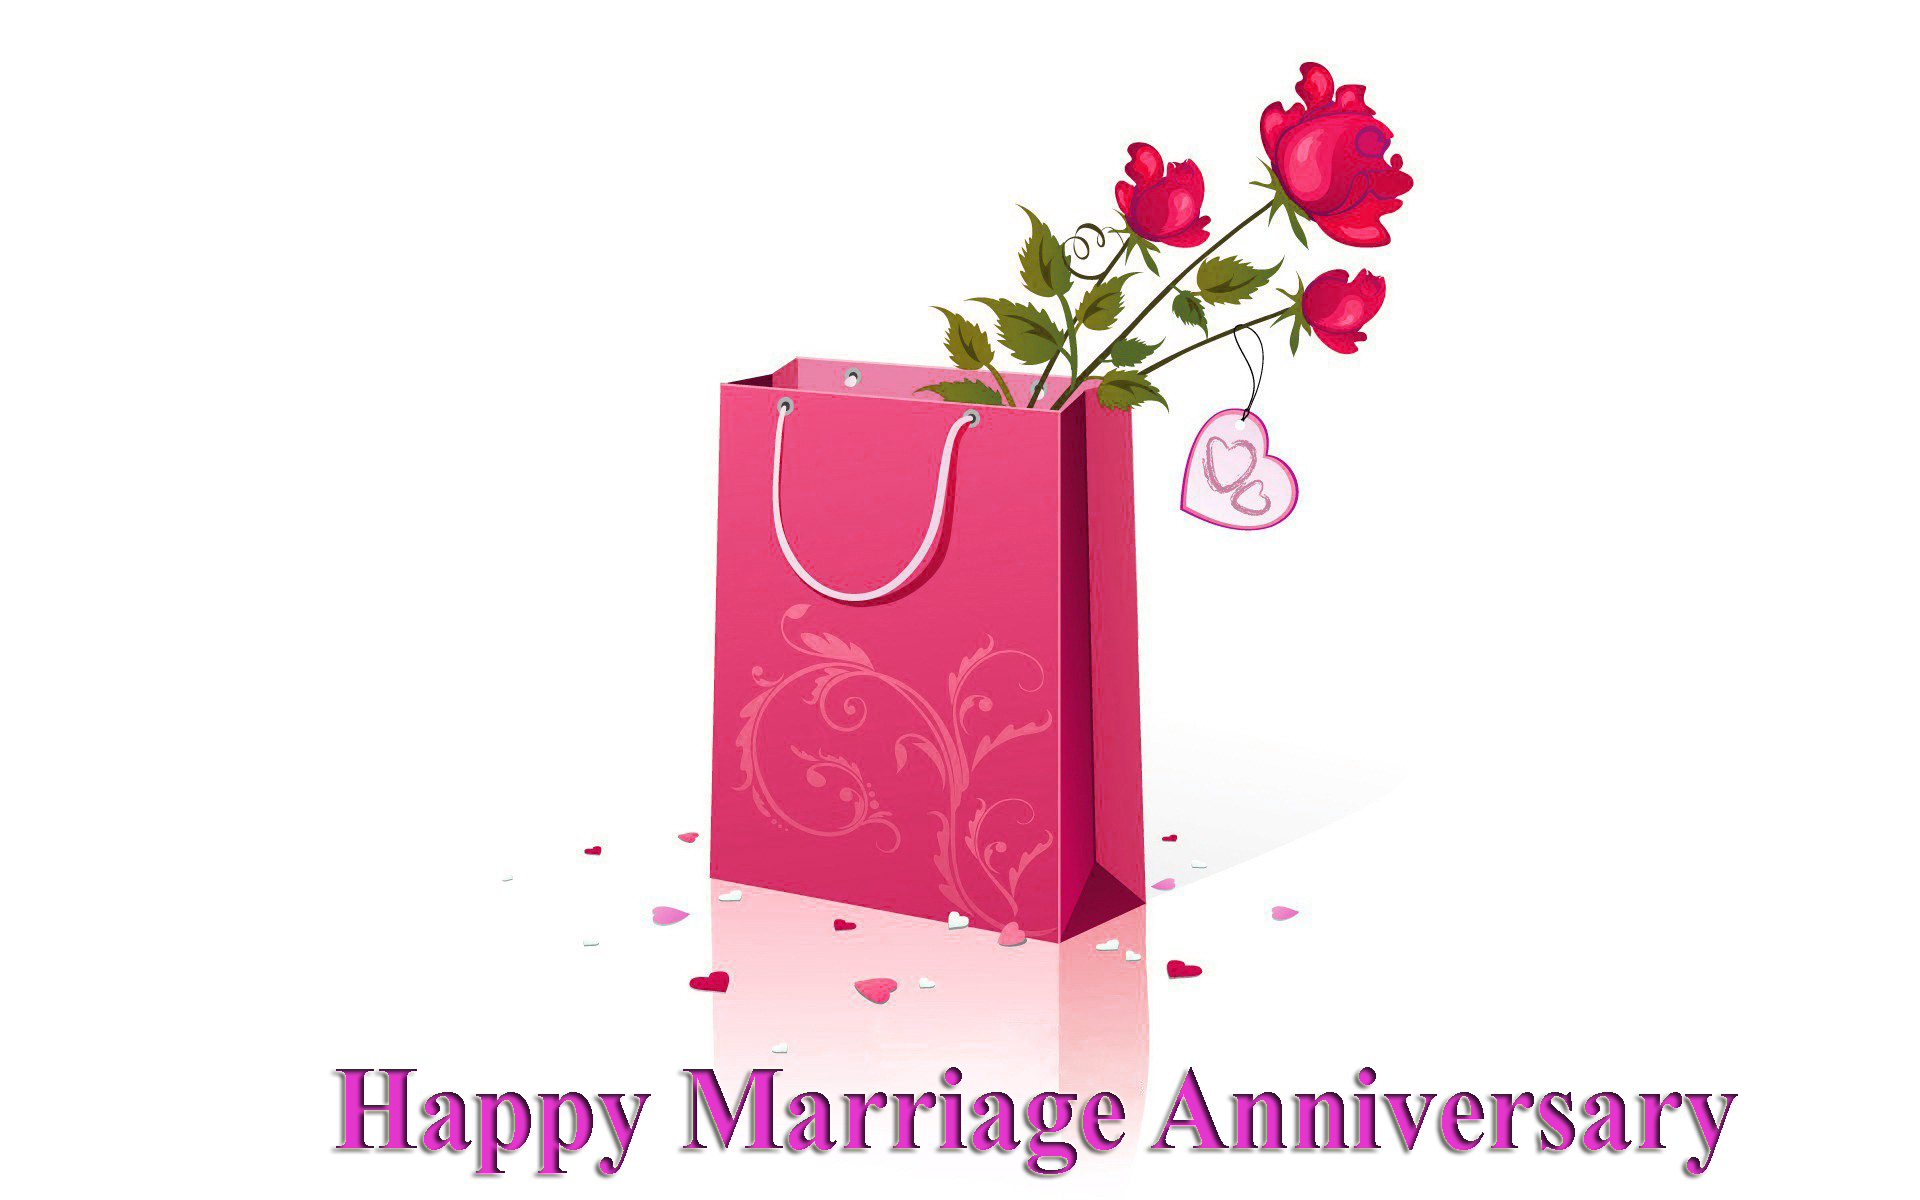 Wedding Anniversary Gift For My Husband : ... Wedding Anniversary Wishes Images Cards Greetings Photos For Husband